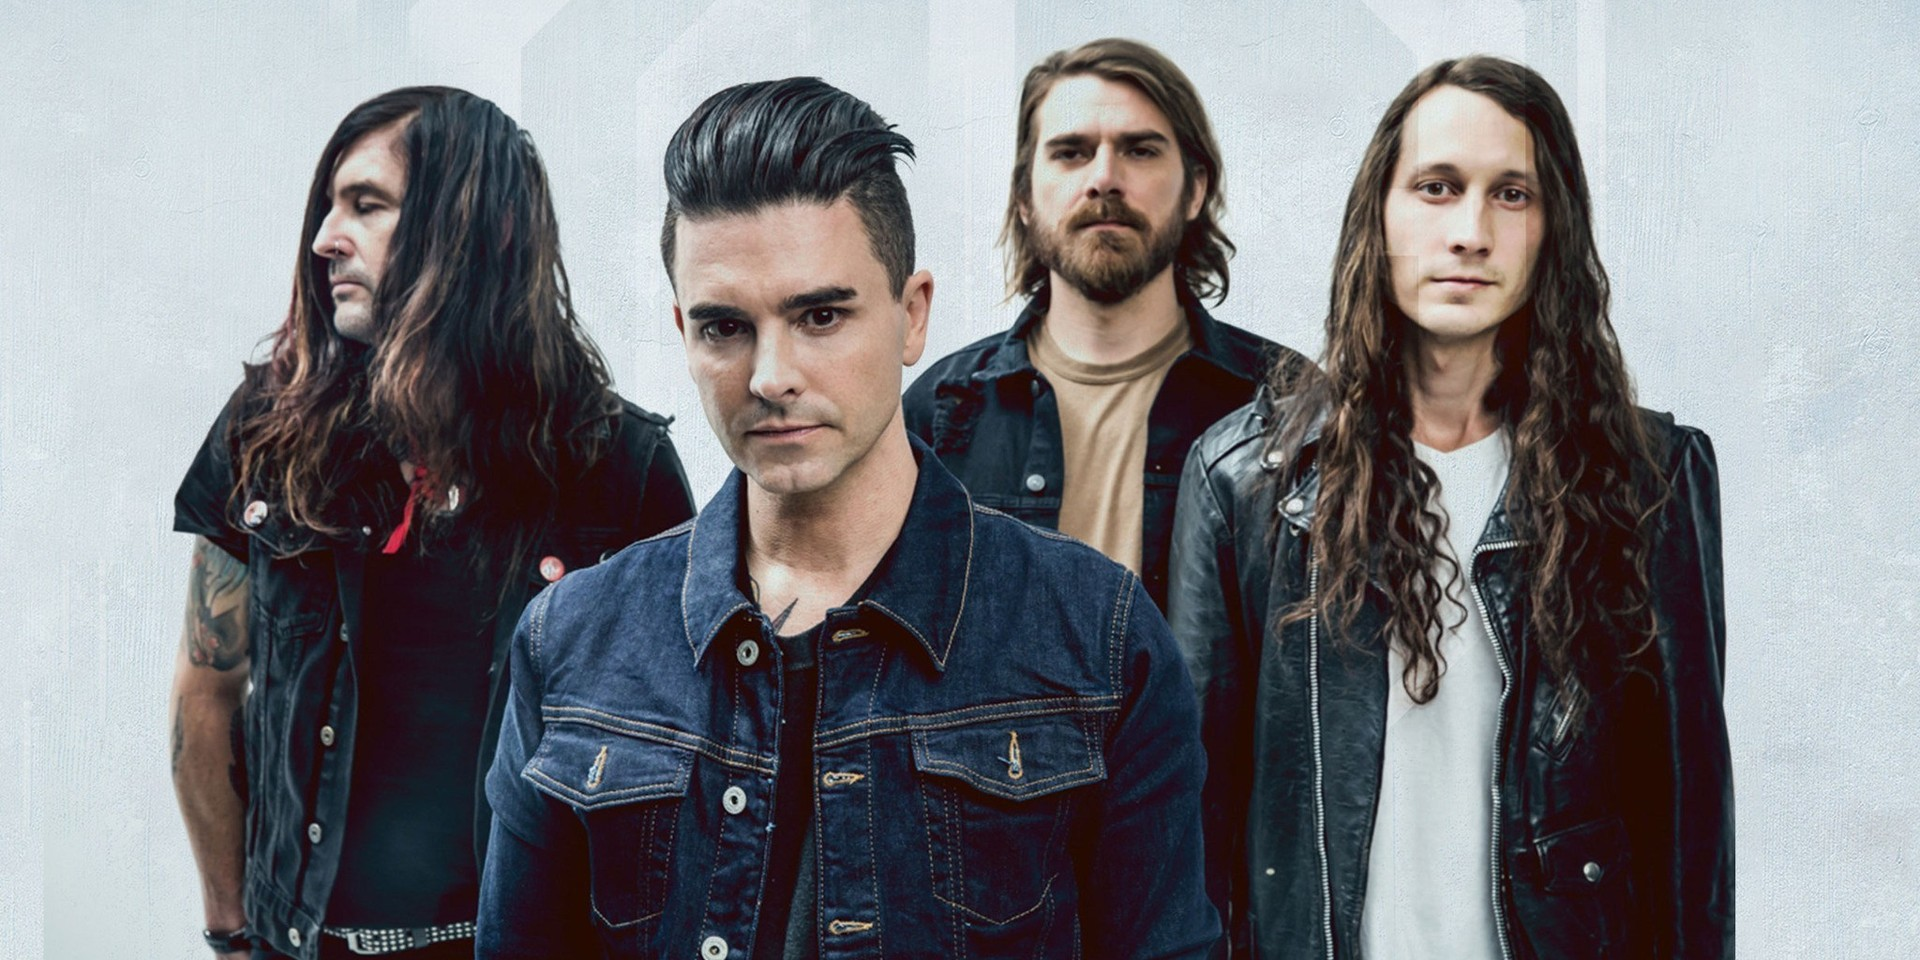 Dashboard Confessional releases Now Is Then Is Now, a series of reimagined versions of classic albums